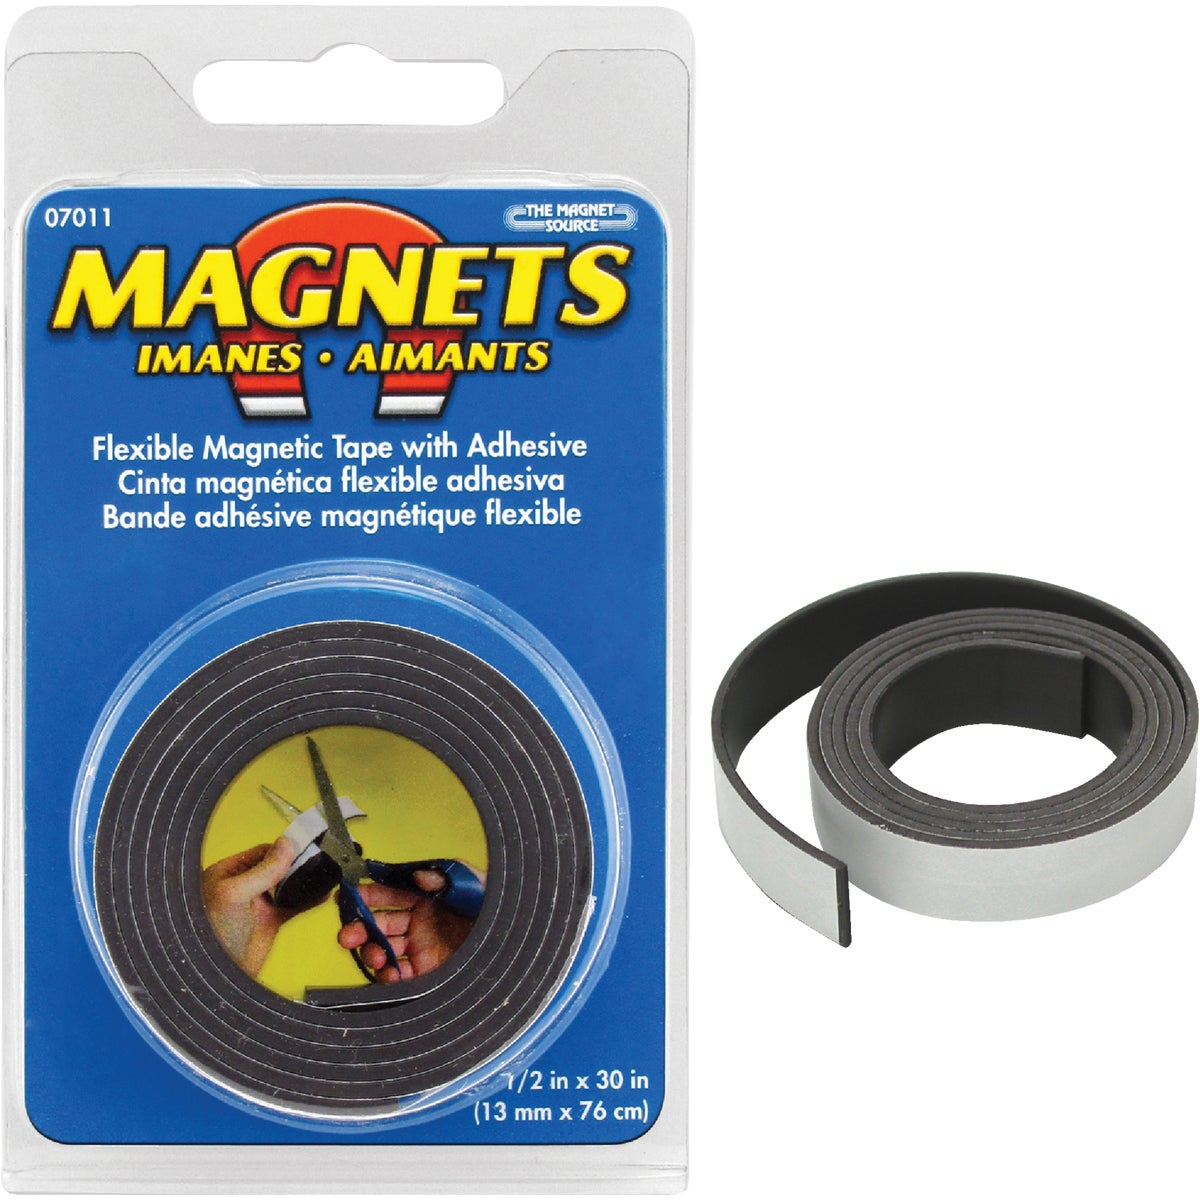 1/2X30 MAGNETIC TAPE - 07011 by Master Magnetics